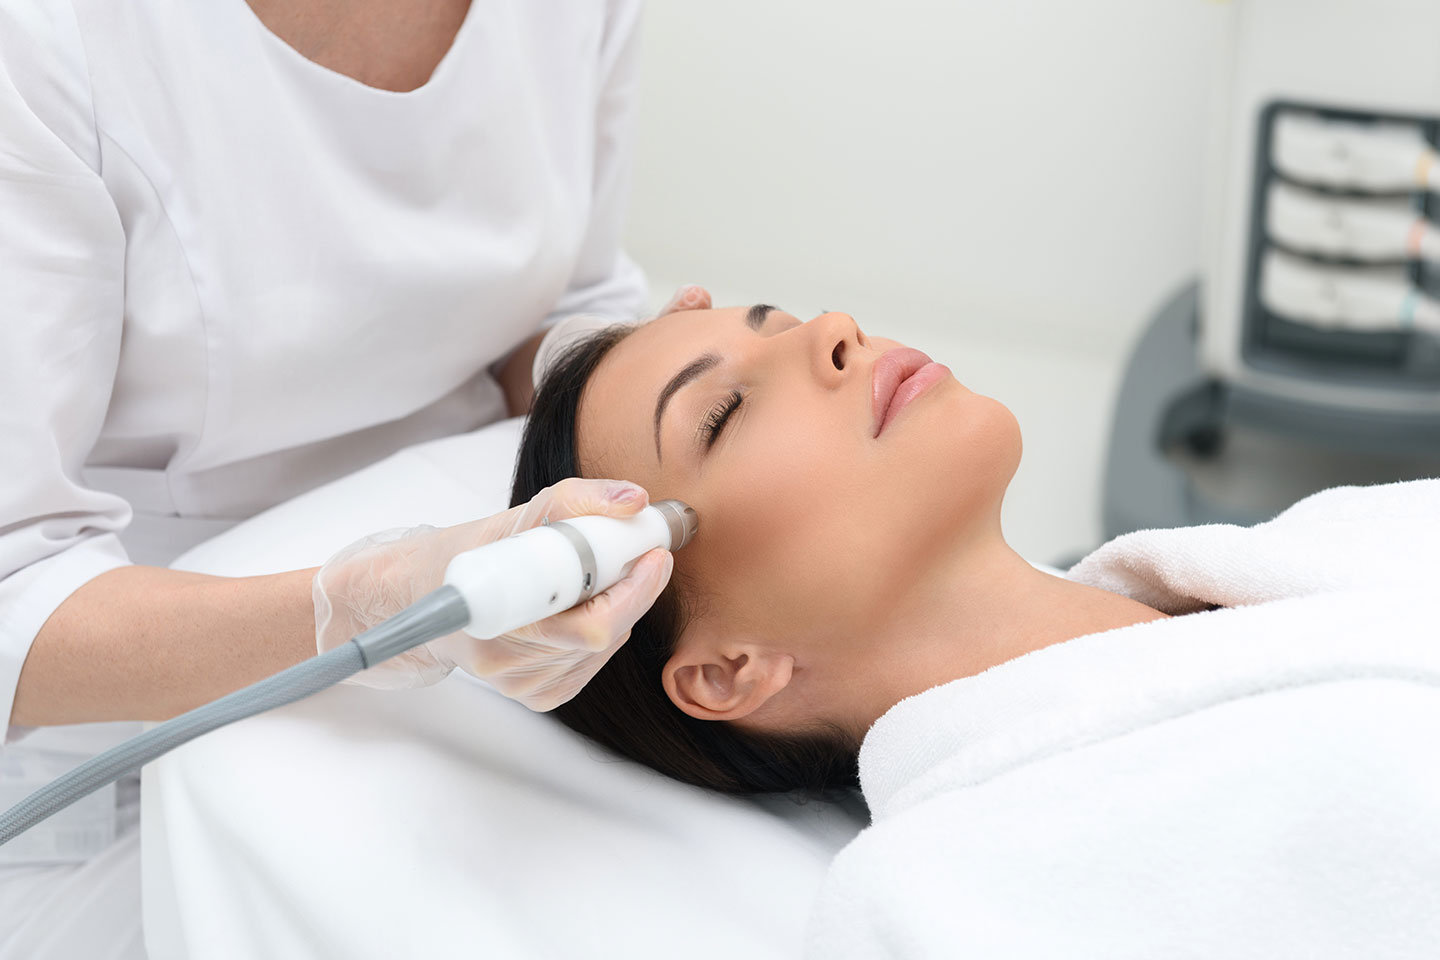 What is a medical spa?